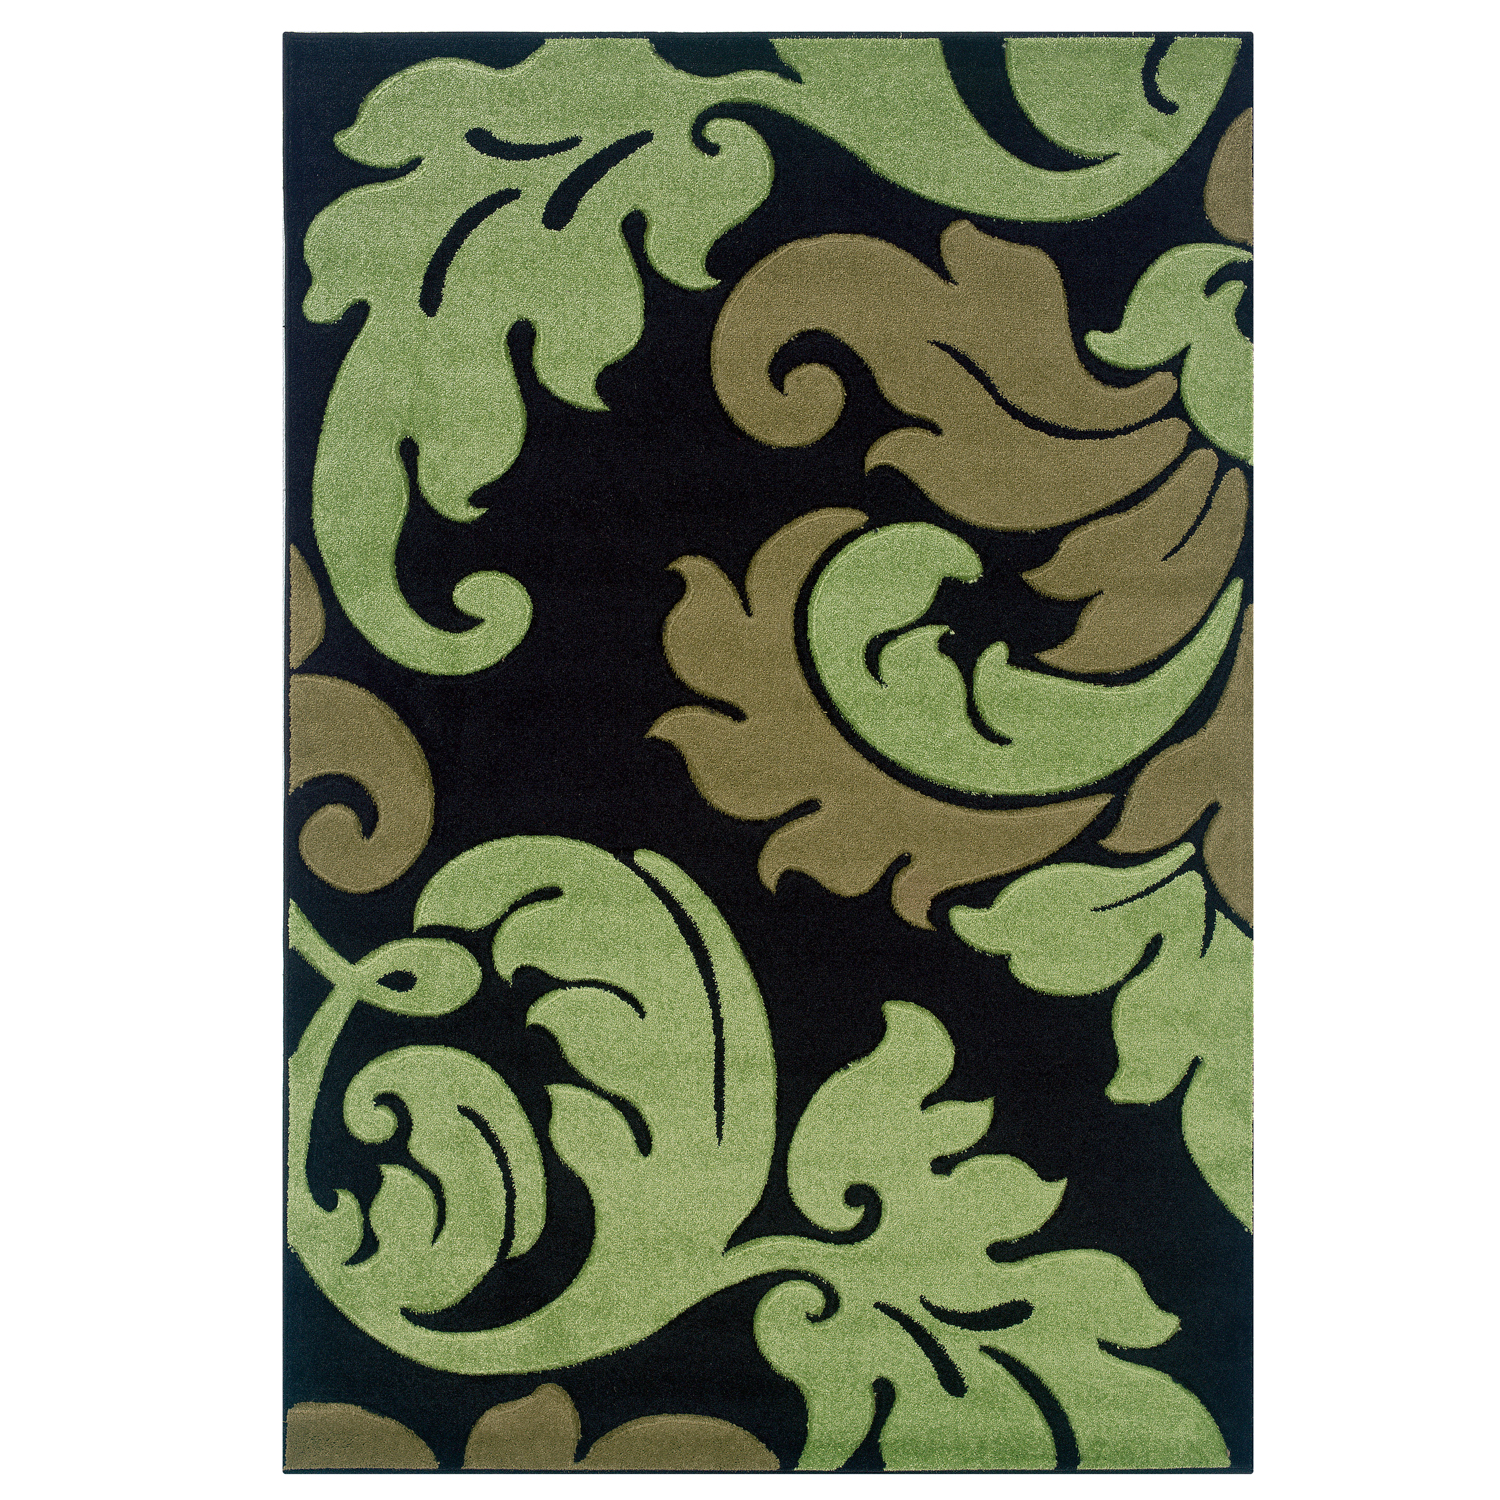 Corfu Black/Green 2'x3' Area Rug , BLACK